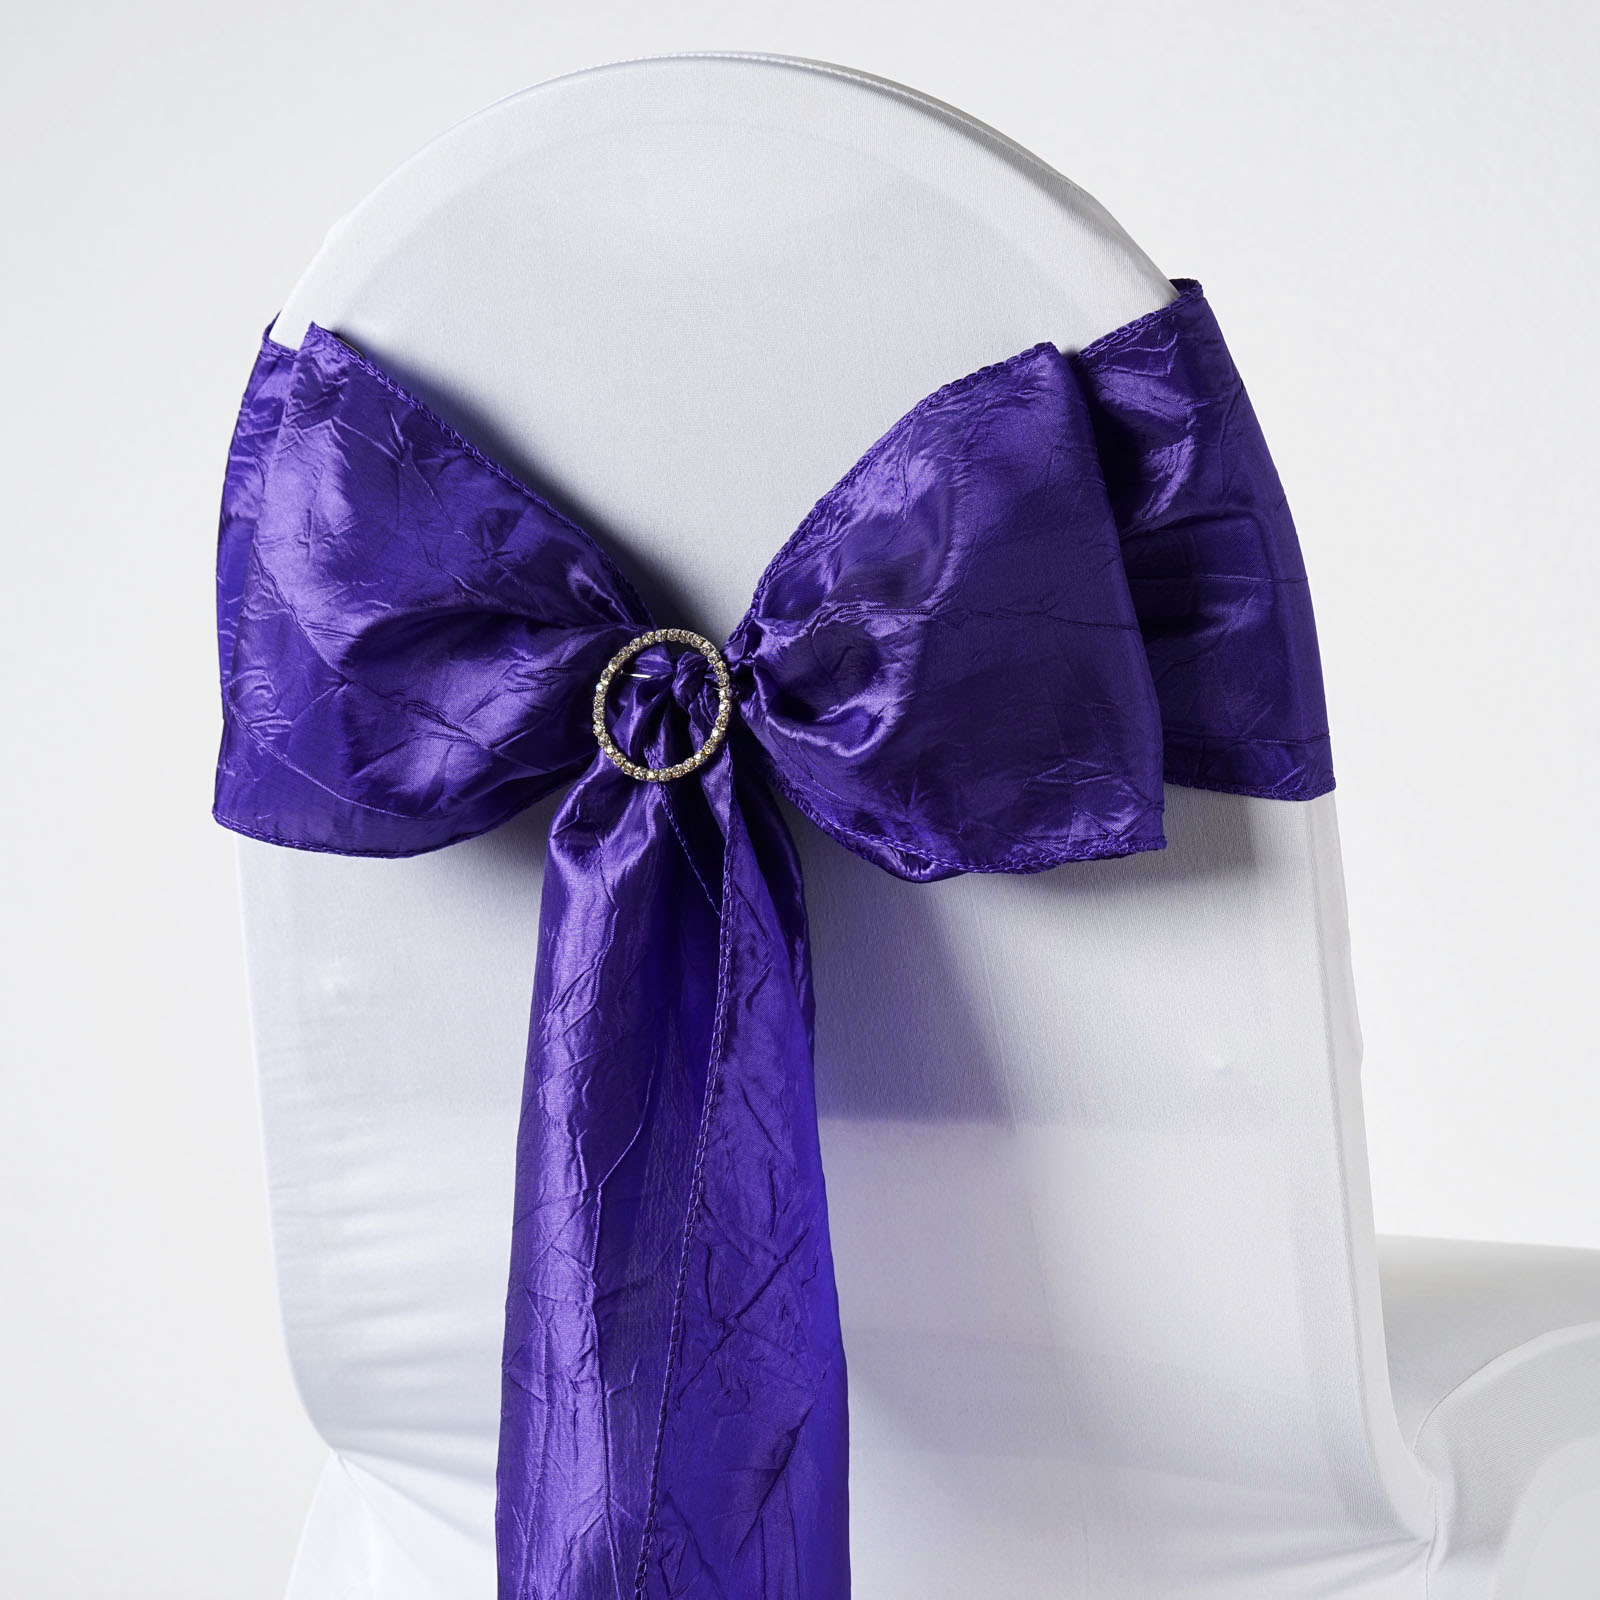 purple chair sashes for weddings gray kitchen table and chairs 150 x crinkled taffeta ties bows wedding